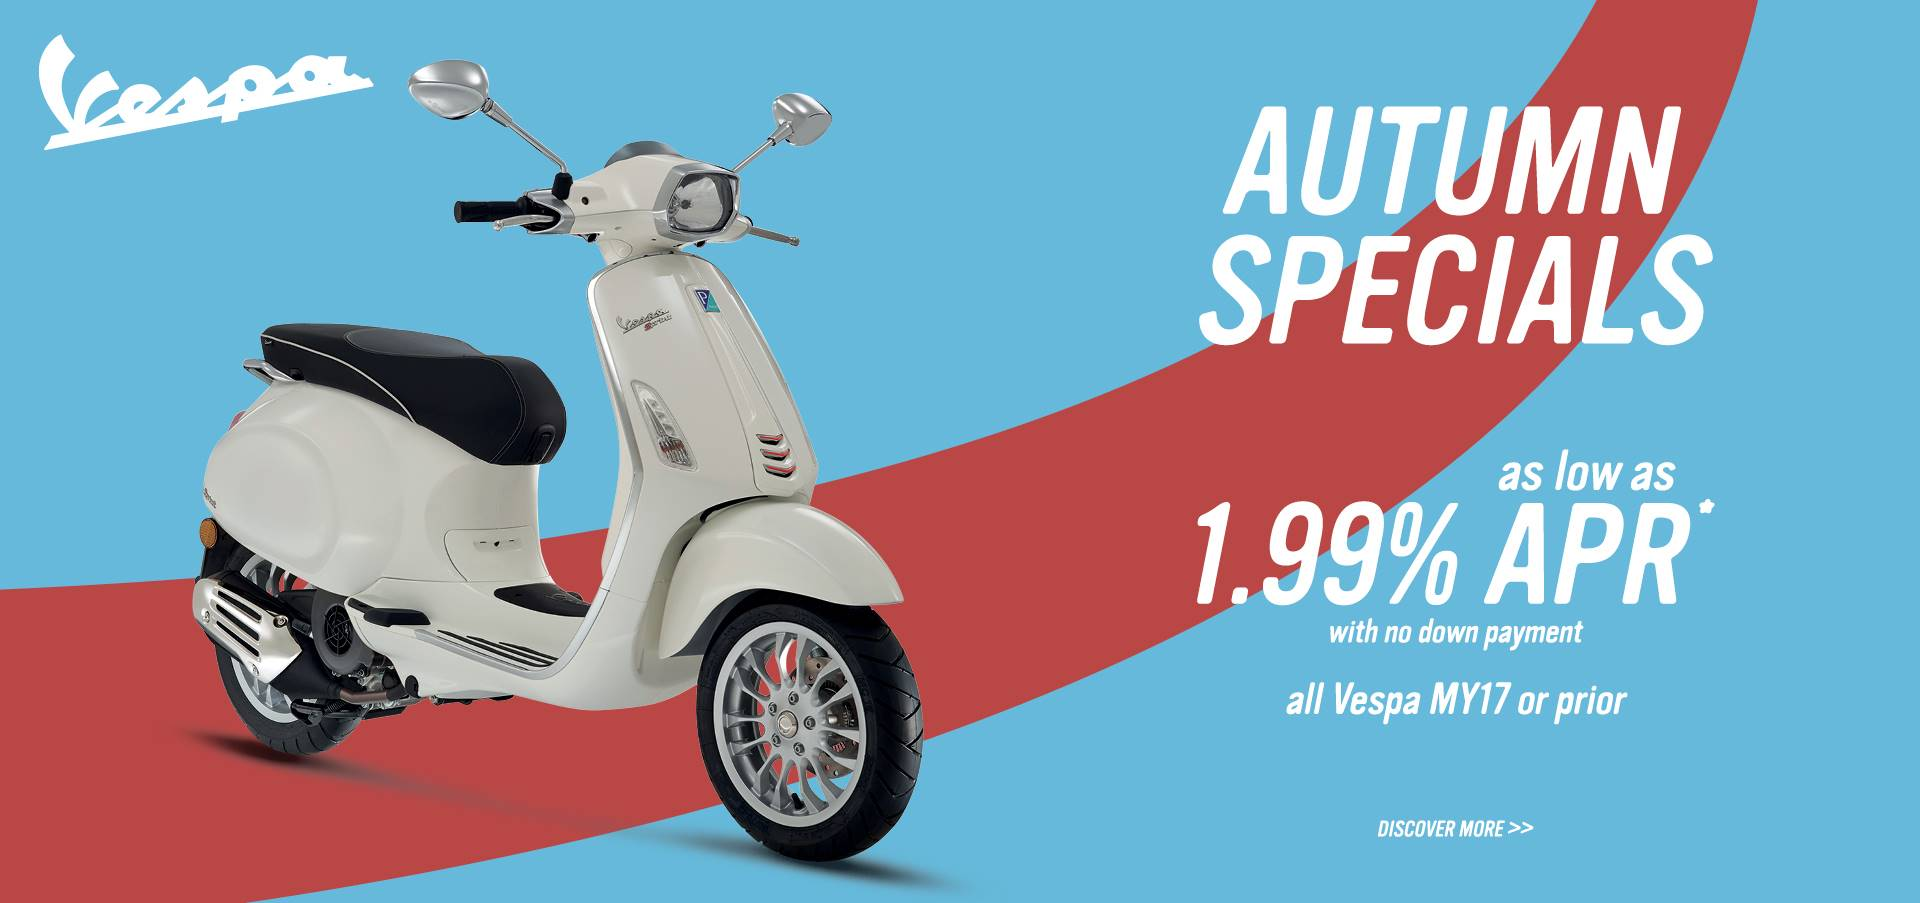 Vespa Autumn Specials